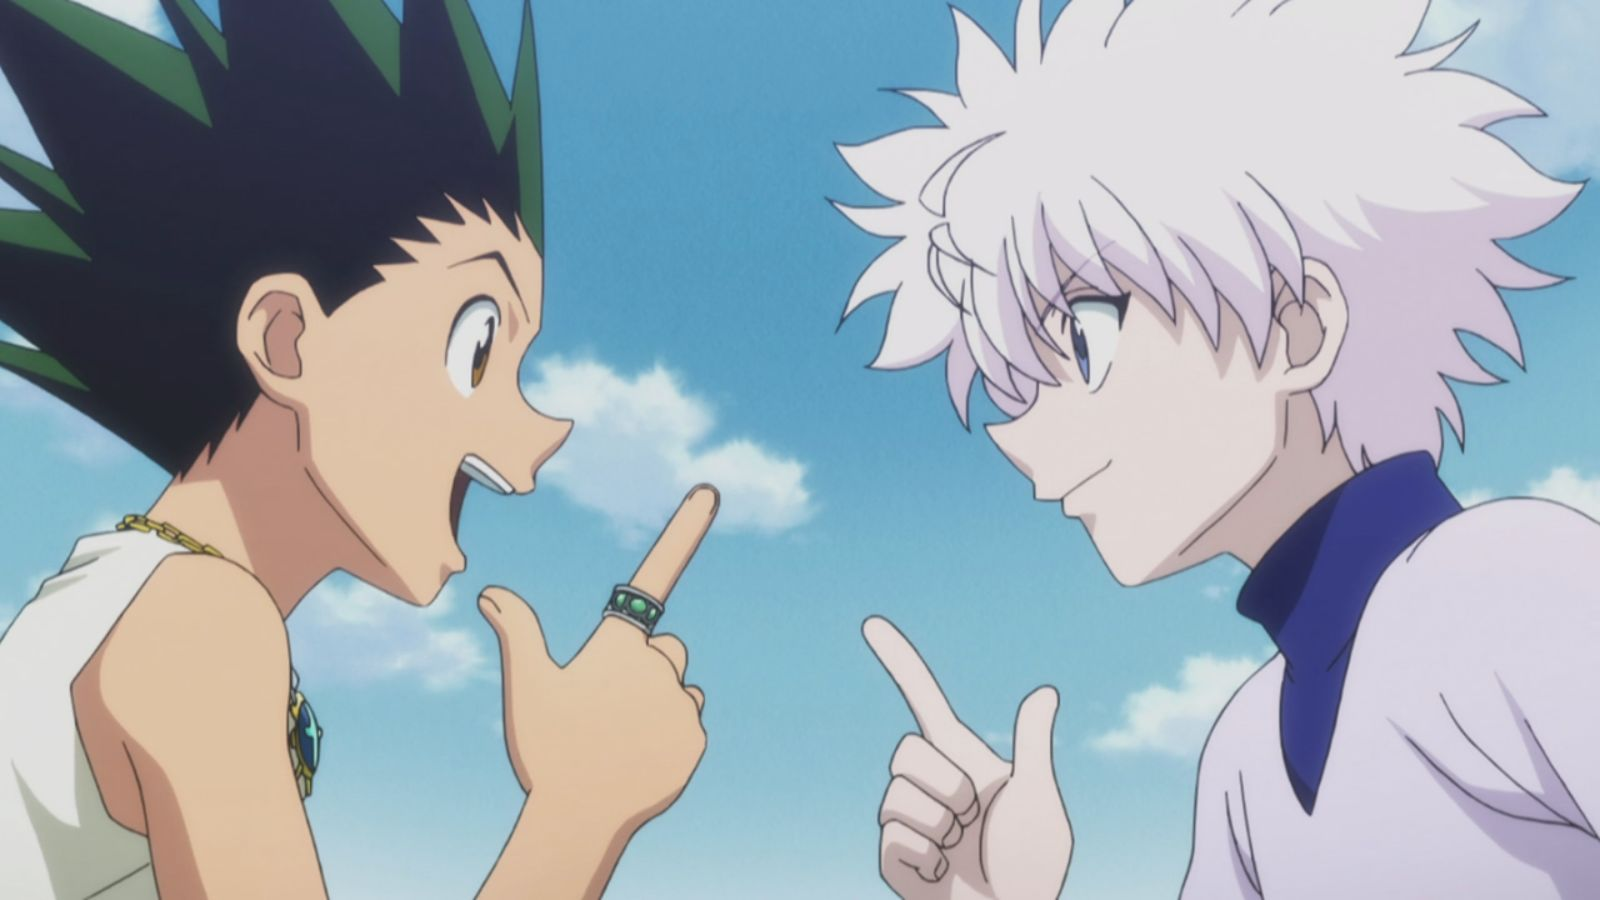 Gon And Killua Wallpaper Hunter X Hunter Gon And Killua 433989